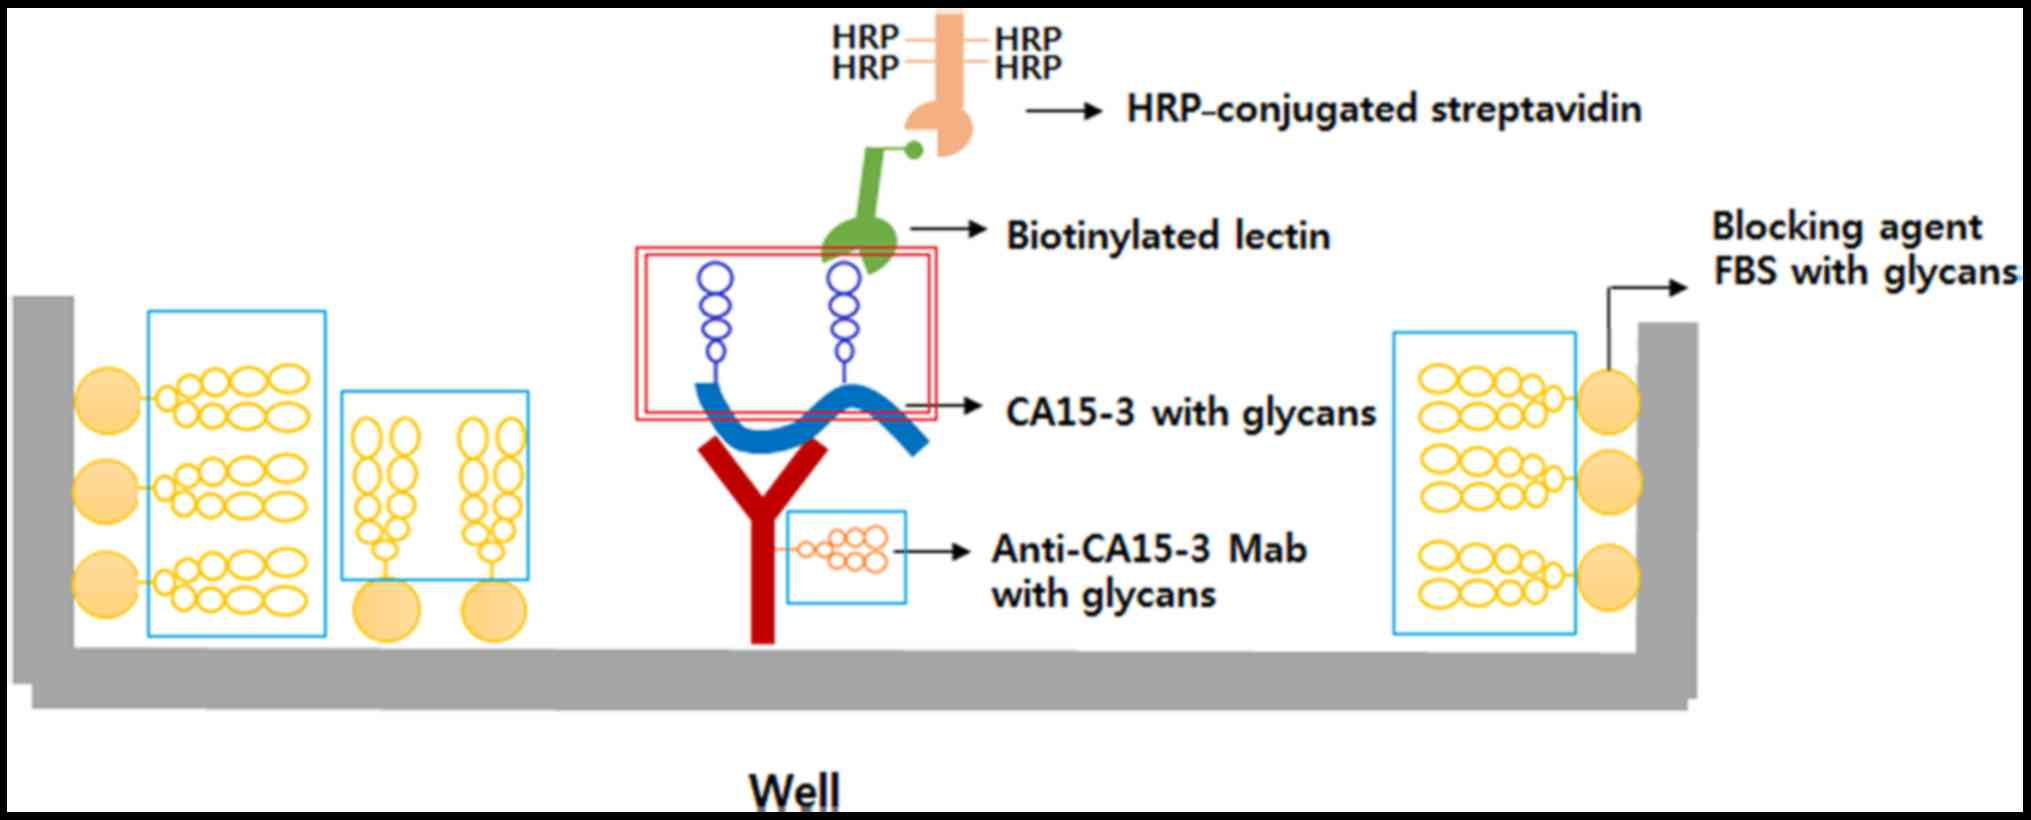 Use Of Ca153 For Screening Breast Cancer An Antibodylectin Pna L Block Diagram Schematic The Antibody Lectin Sandwich Assay Immobilized Anti Ca15 3 Captures In Serum And Glycosylation Is Detected